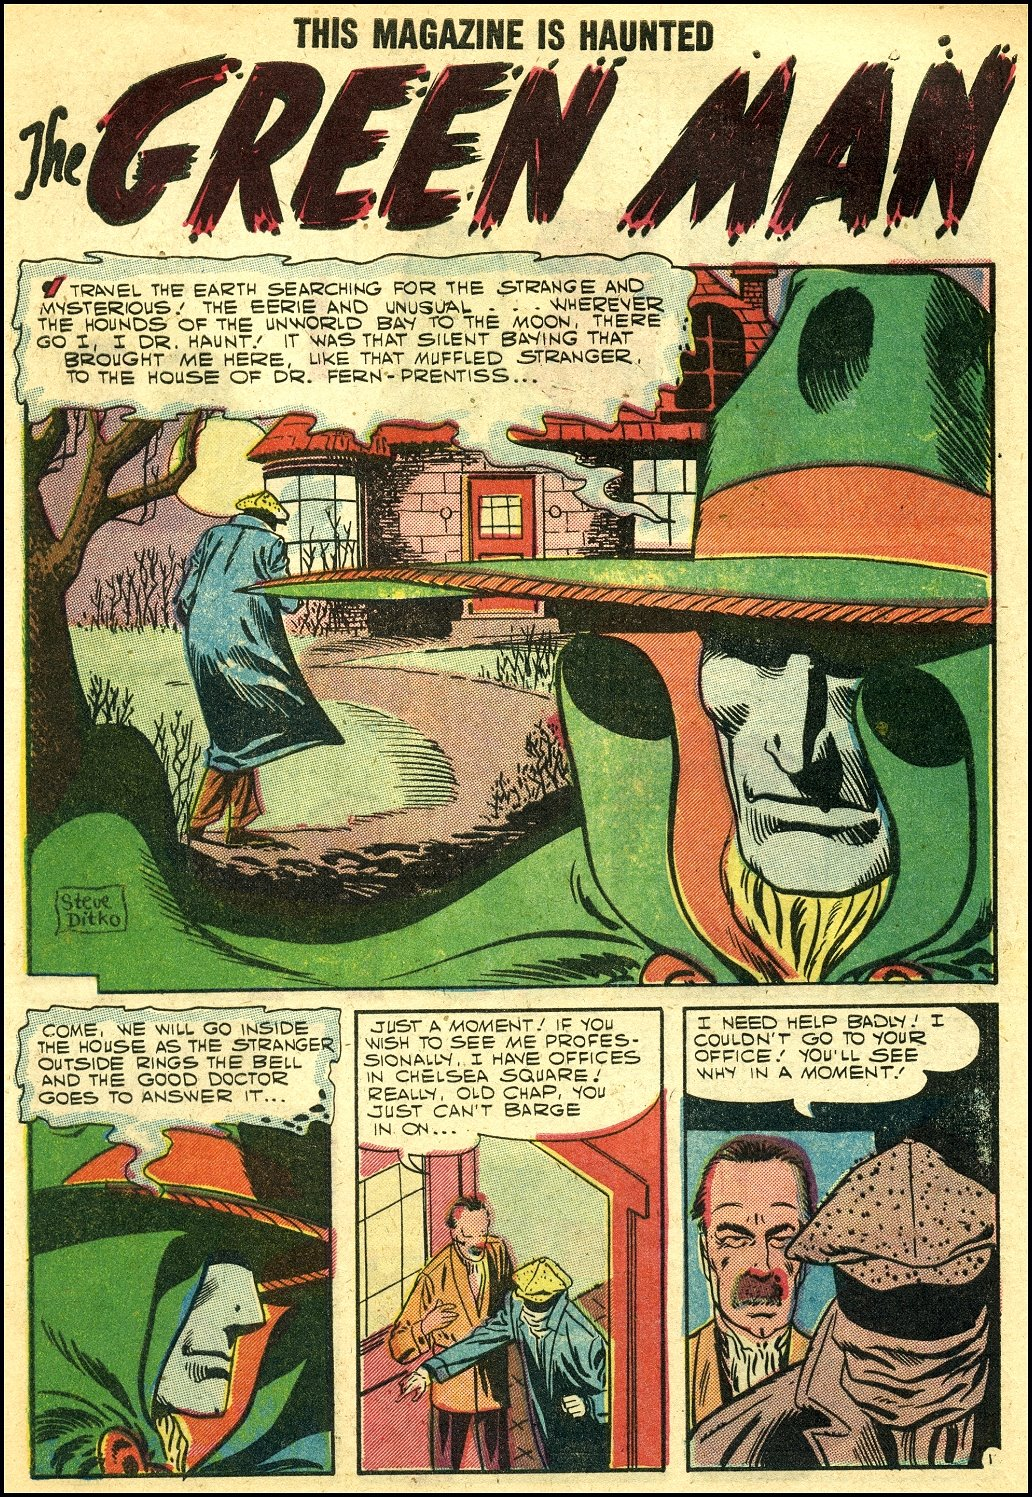 [01_haunted_14_ditko_sty2_1957dec.jpg]